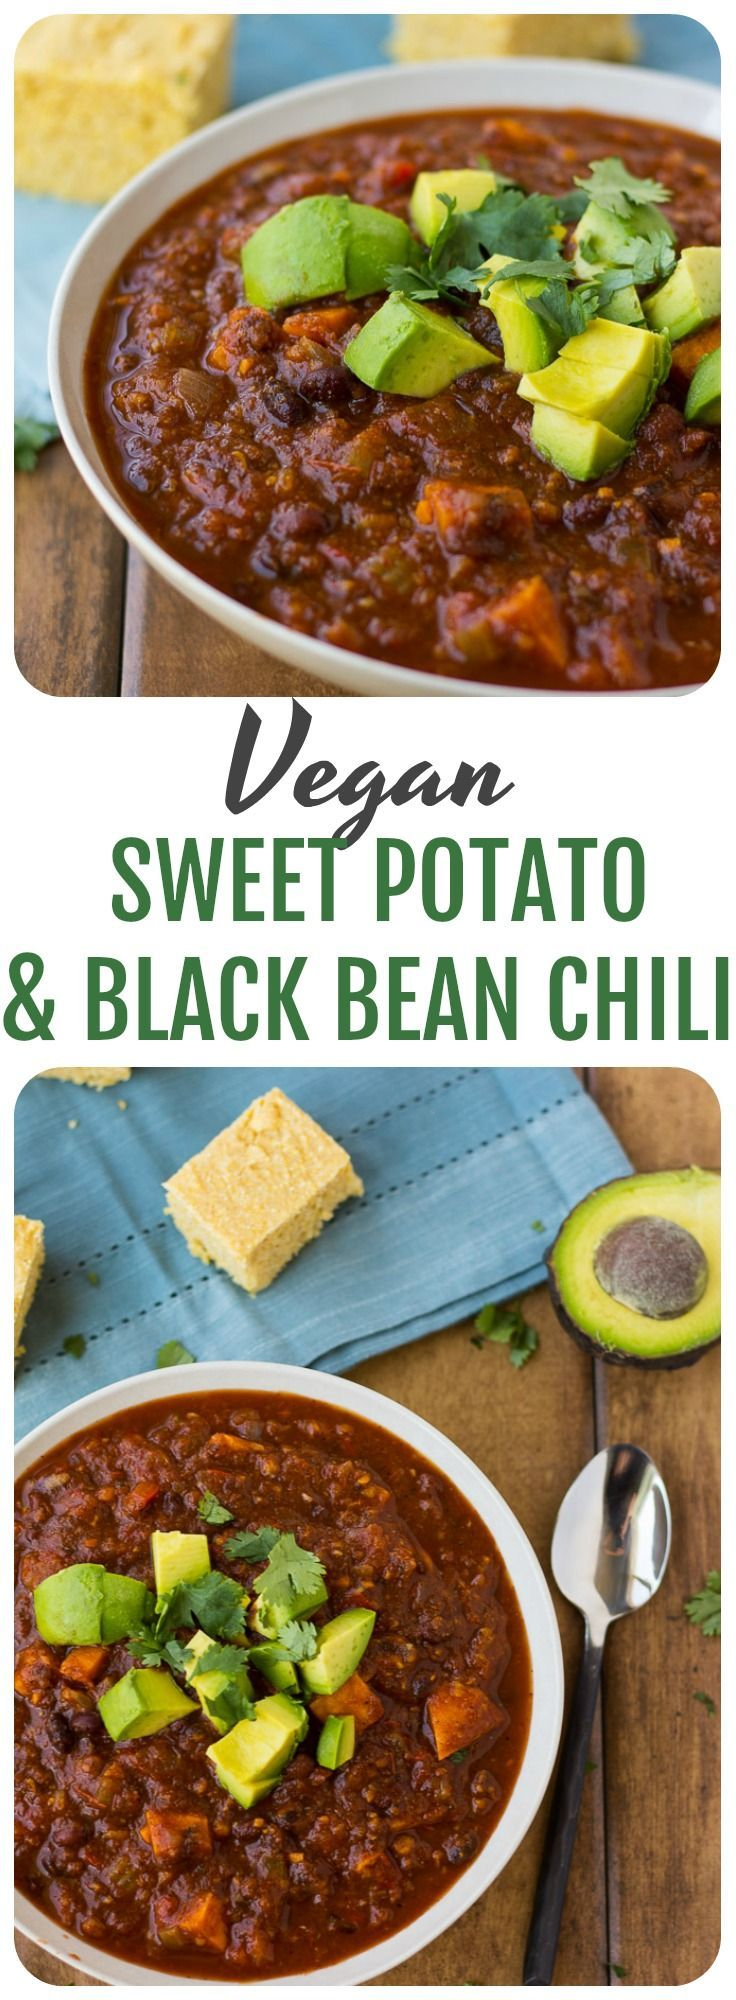 Vegan Sweet Potato & Black Bean Chili- Mildly spiced, kid-friendly and nutrient dense.